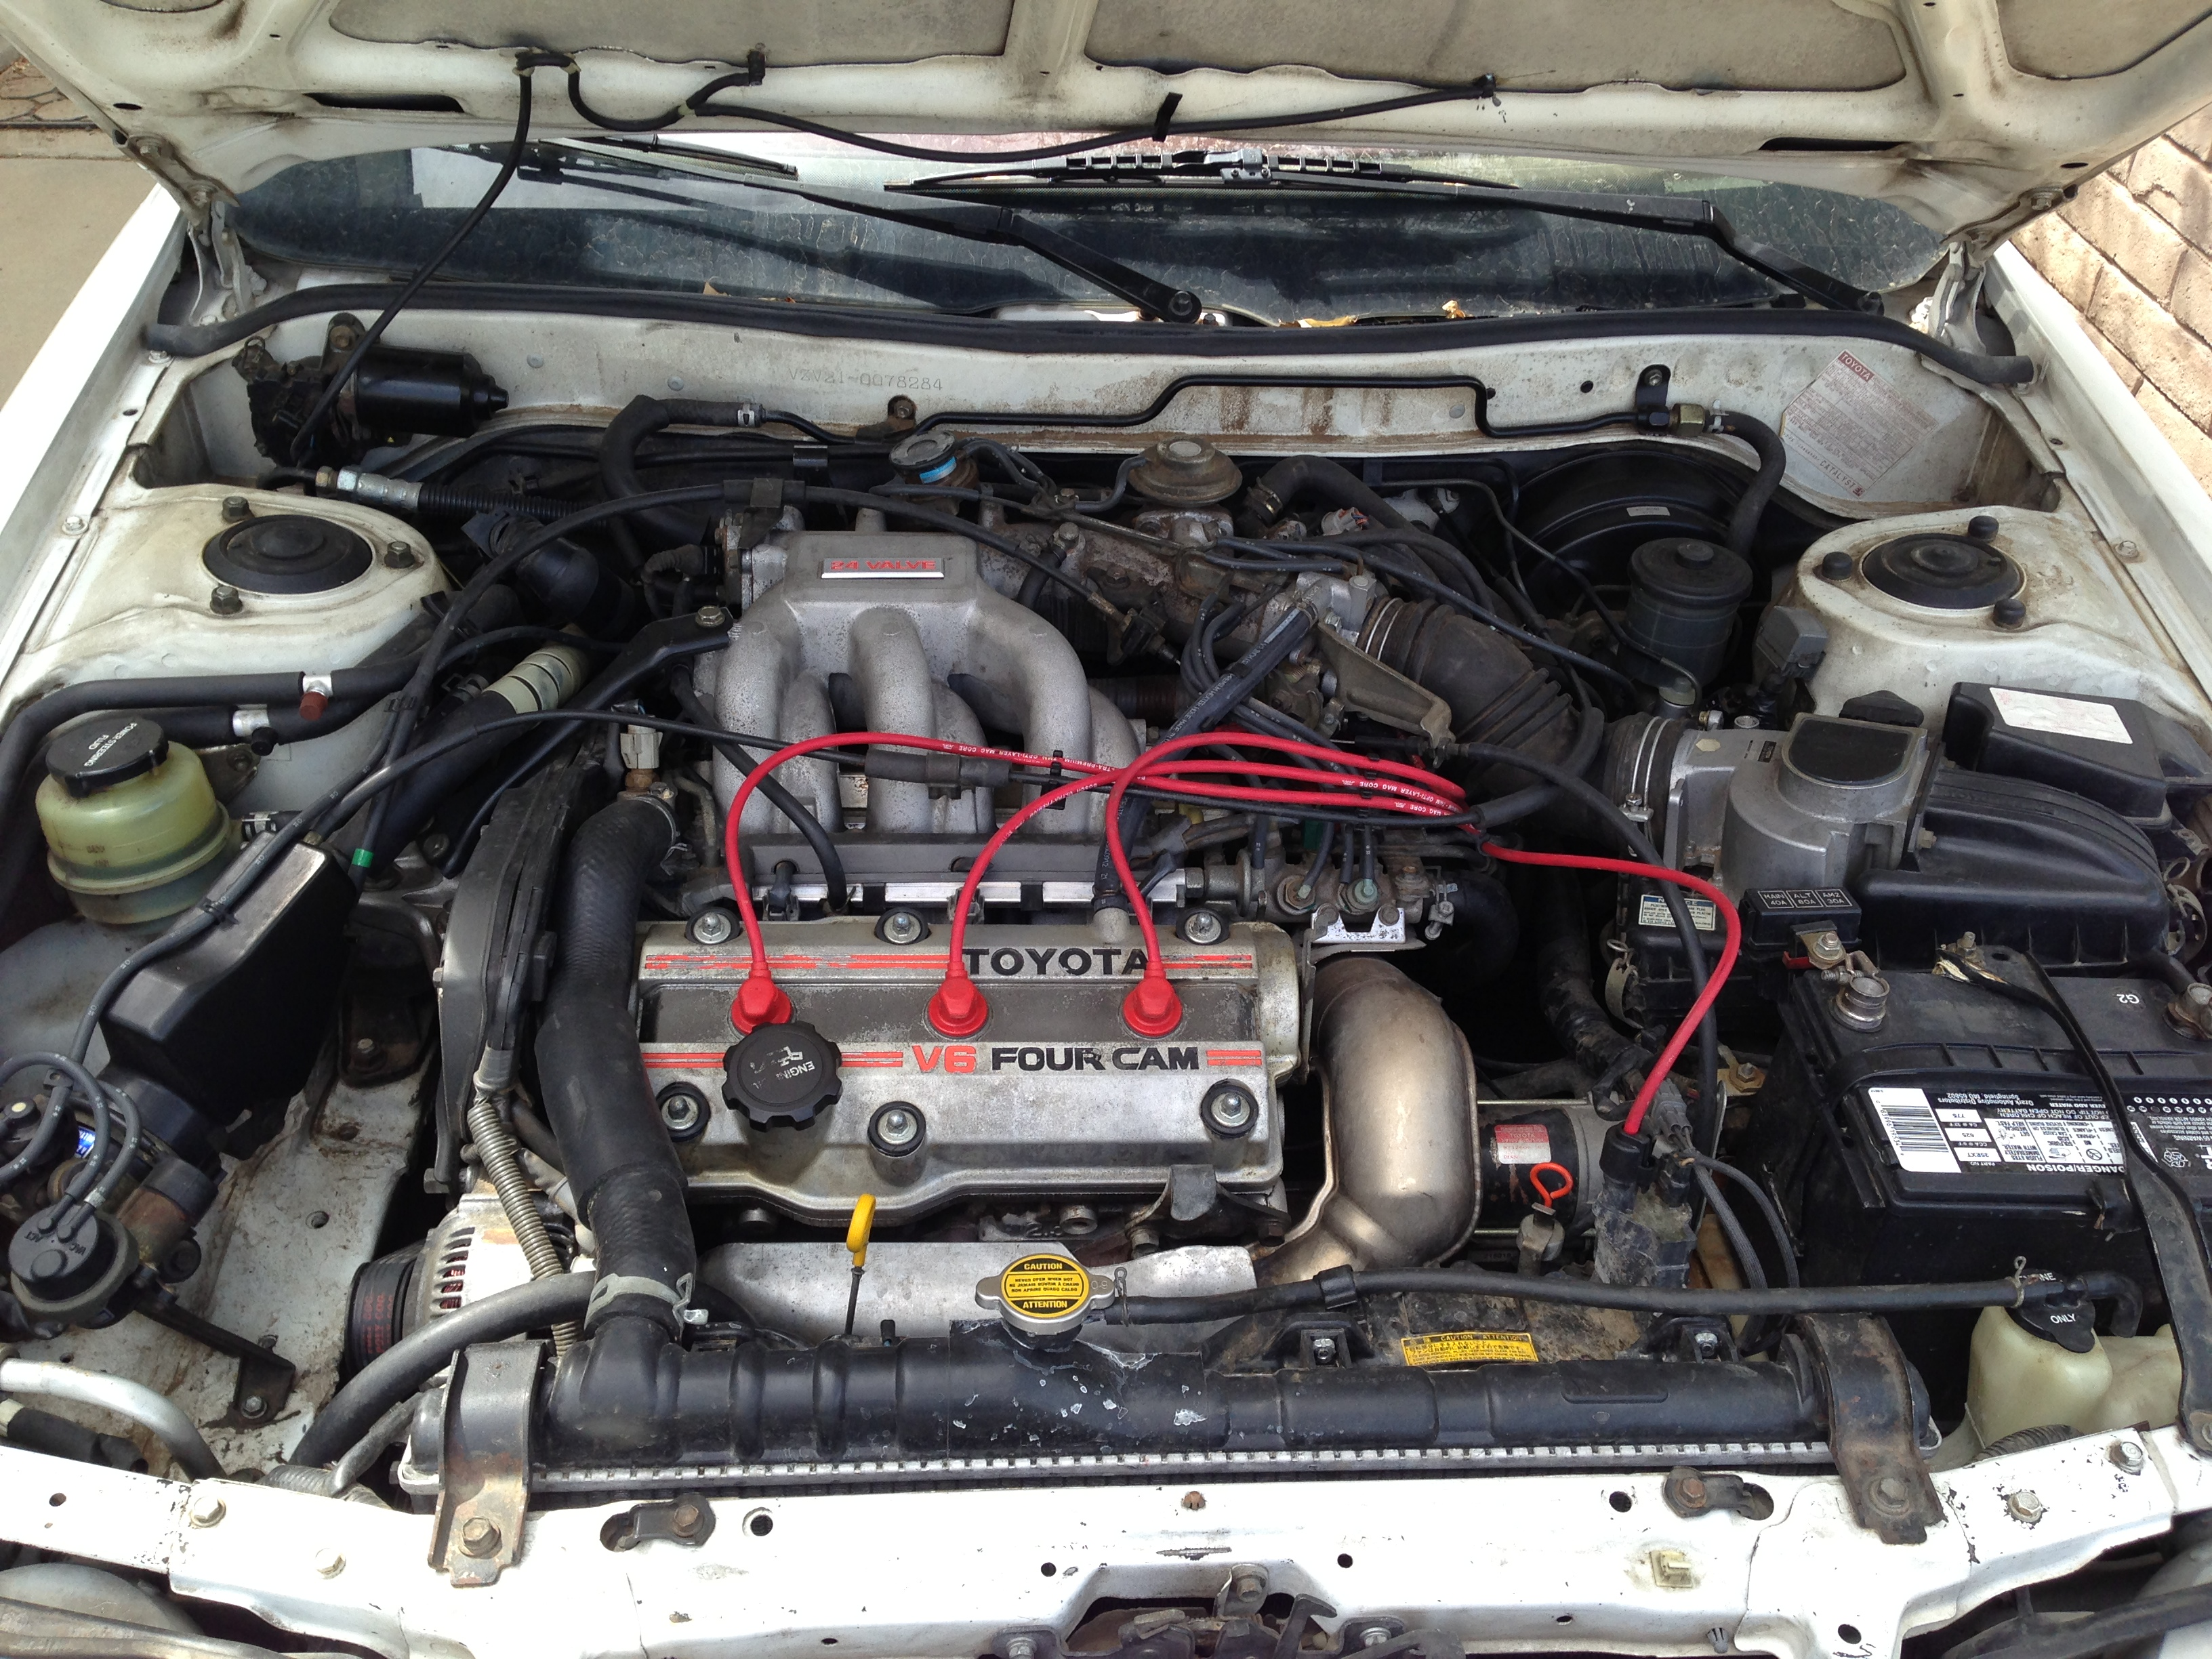 Toyota Vz Fe Engine on Toyota 4runner V6 1995 Interior